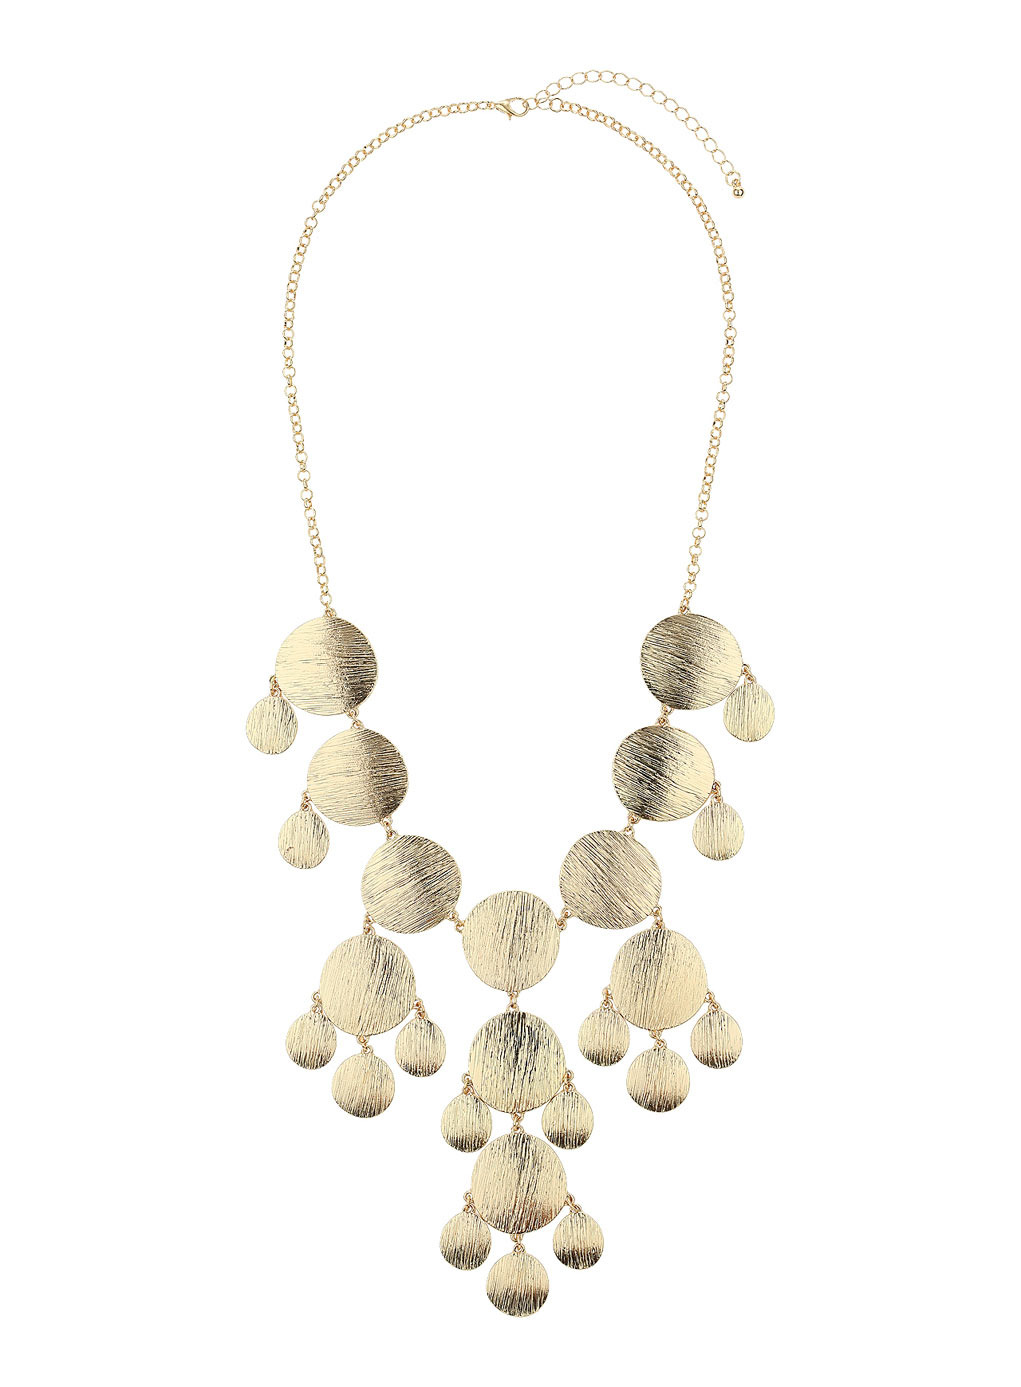 Gold Brushed Disc Necklace - predominant colour: gold; occasions: evening, occasion, holiday; length: mid; size: large/oversized; material: chain/metal; finish: metallic; style: bib/statement; season: s/s 2014